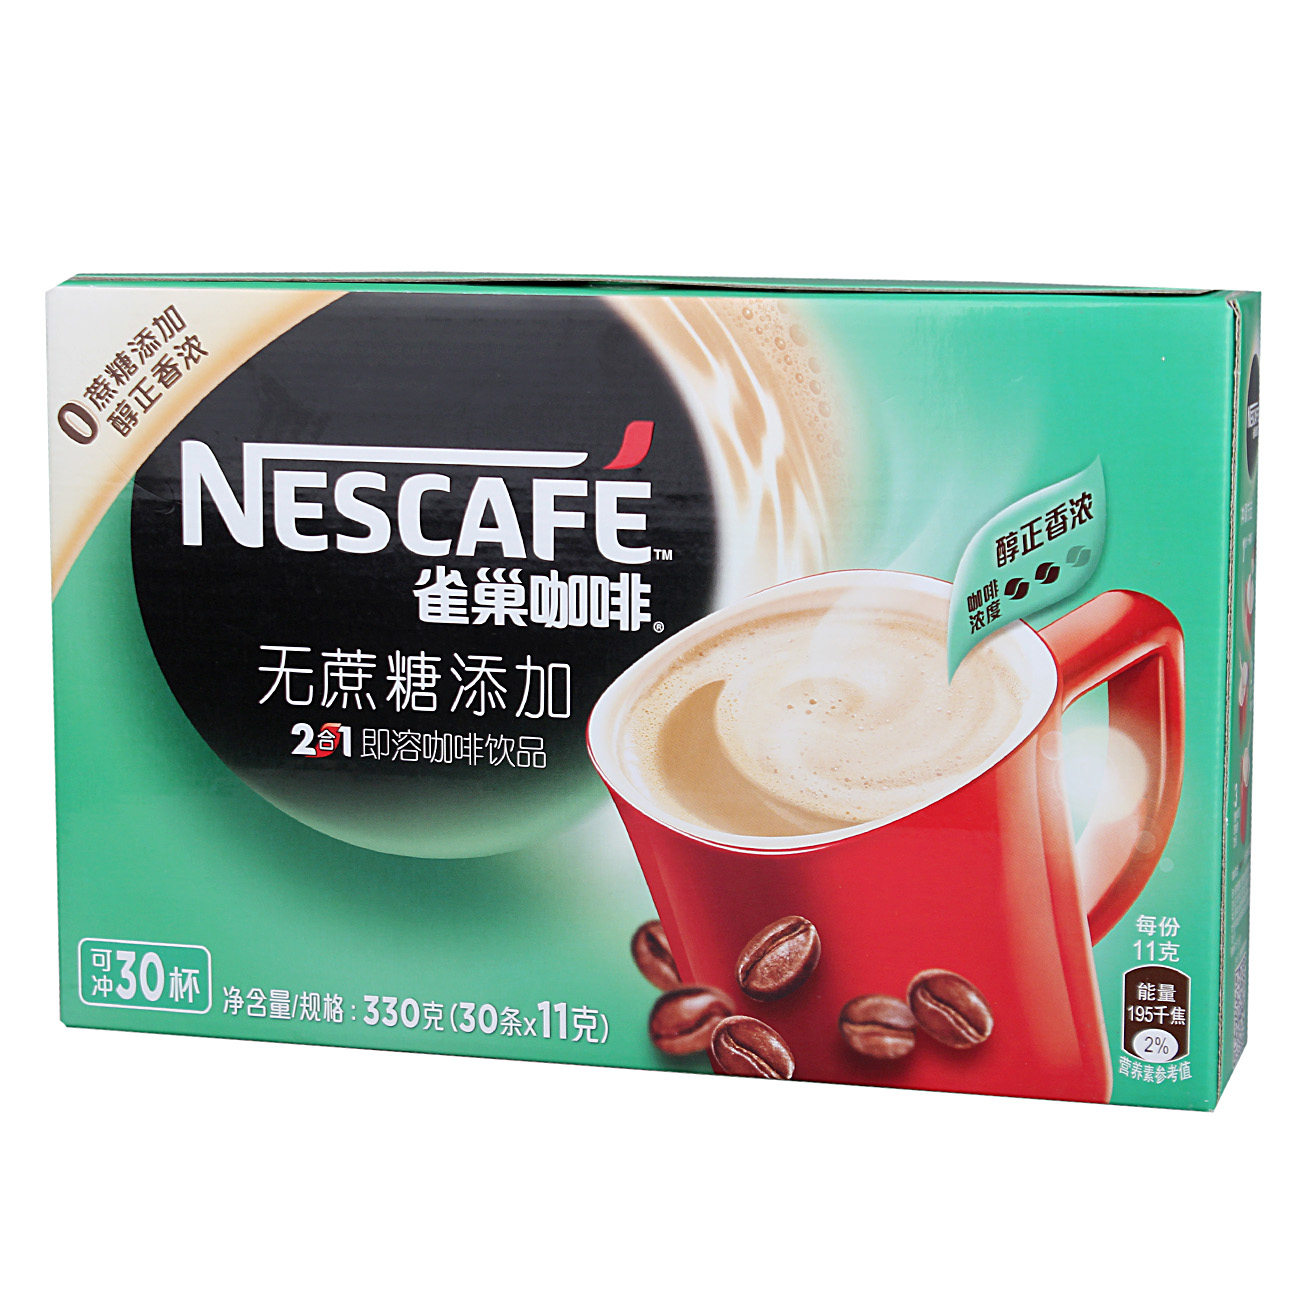 Many provinces shipping nestle/nestle 2 in 1 coffee 30 * g of that instant coffee drinks 330g